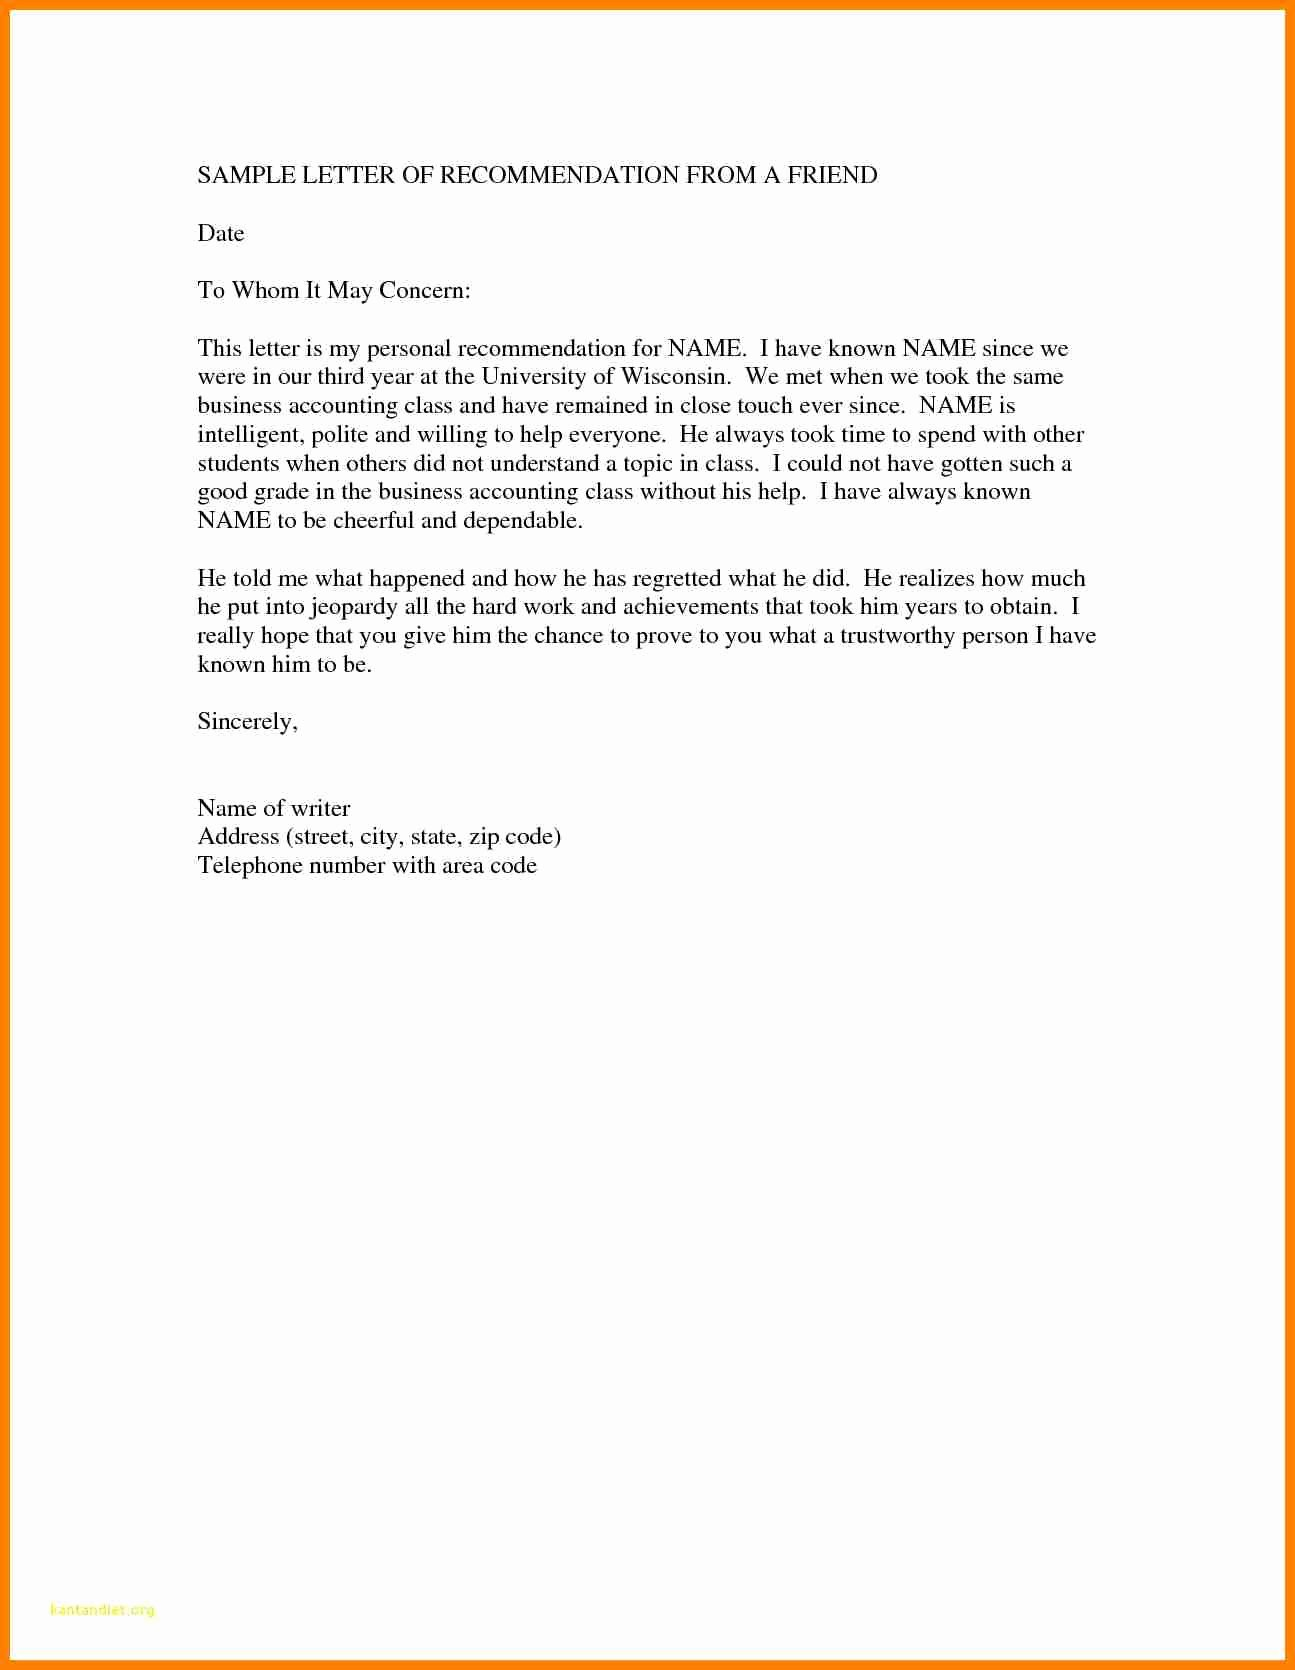 Immigration Reference Letter Sample Elegant 7 Re Mendation Letter for Immigration for A Friend